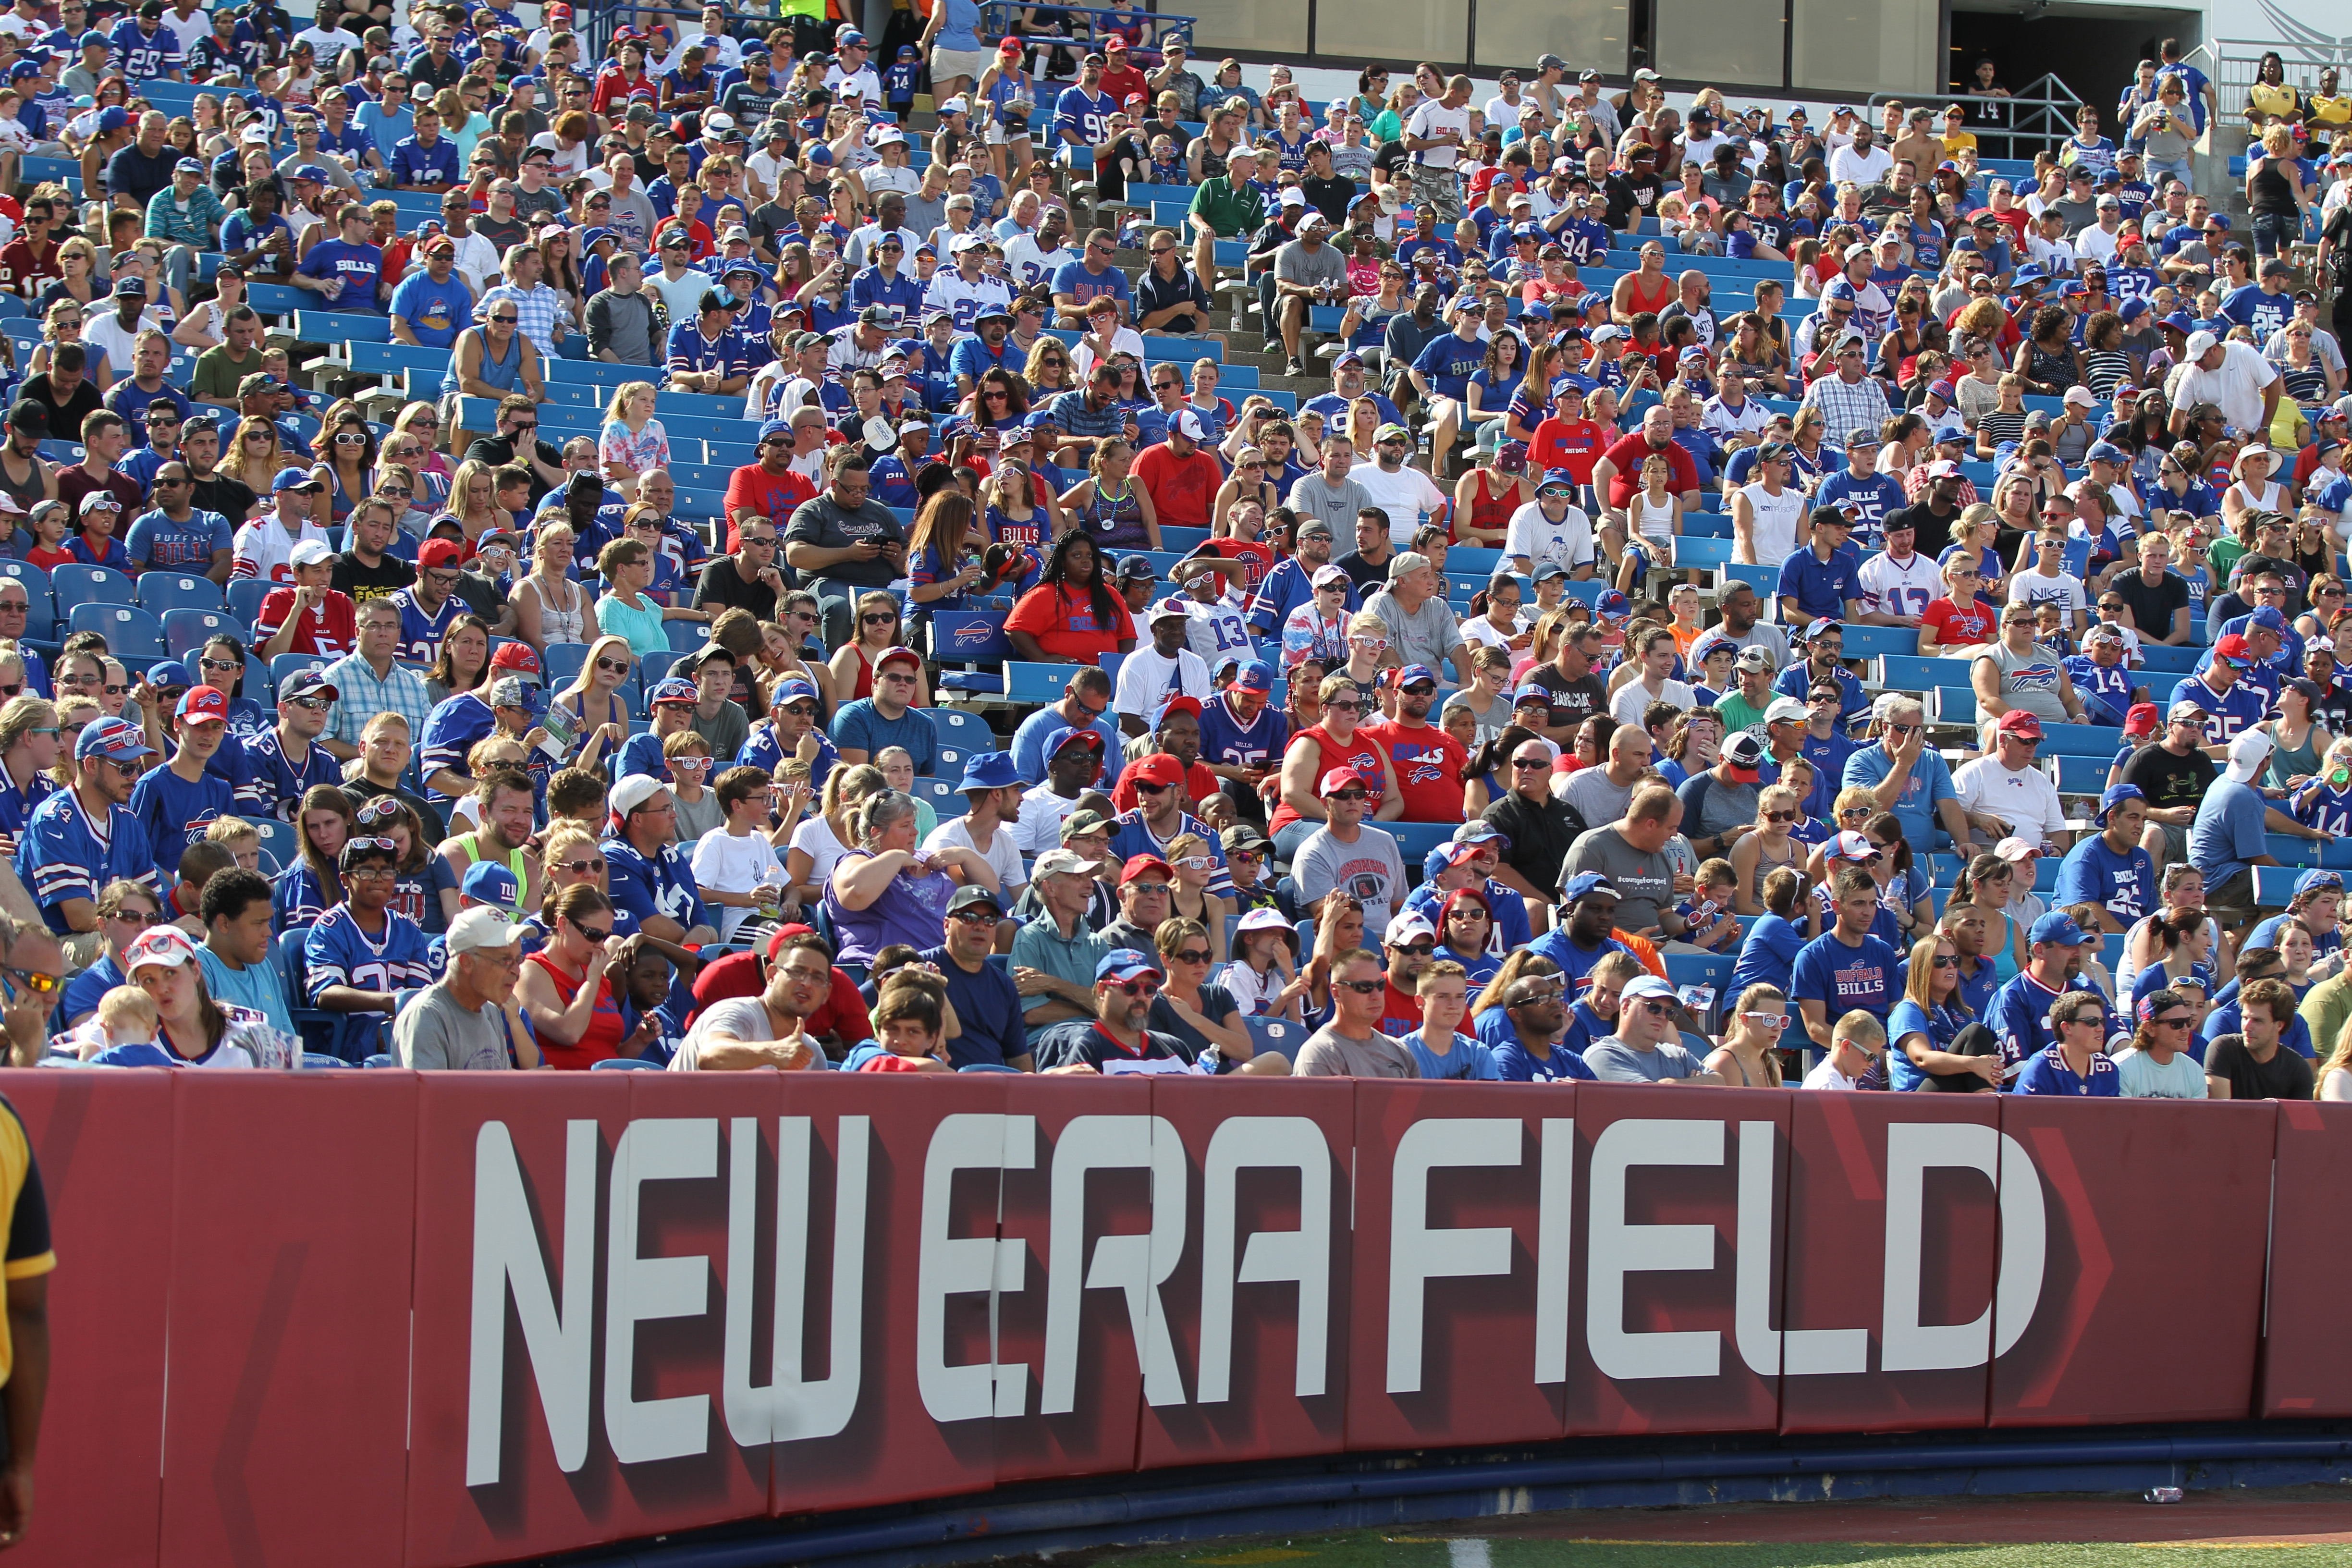 It may be time to change things up and start playing new music to get Bills fans at New Era Field more excited.